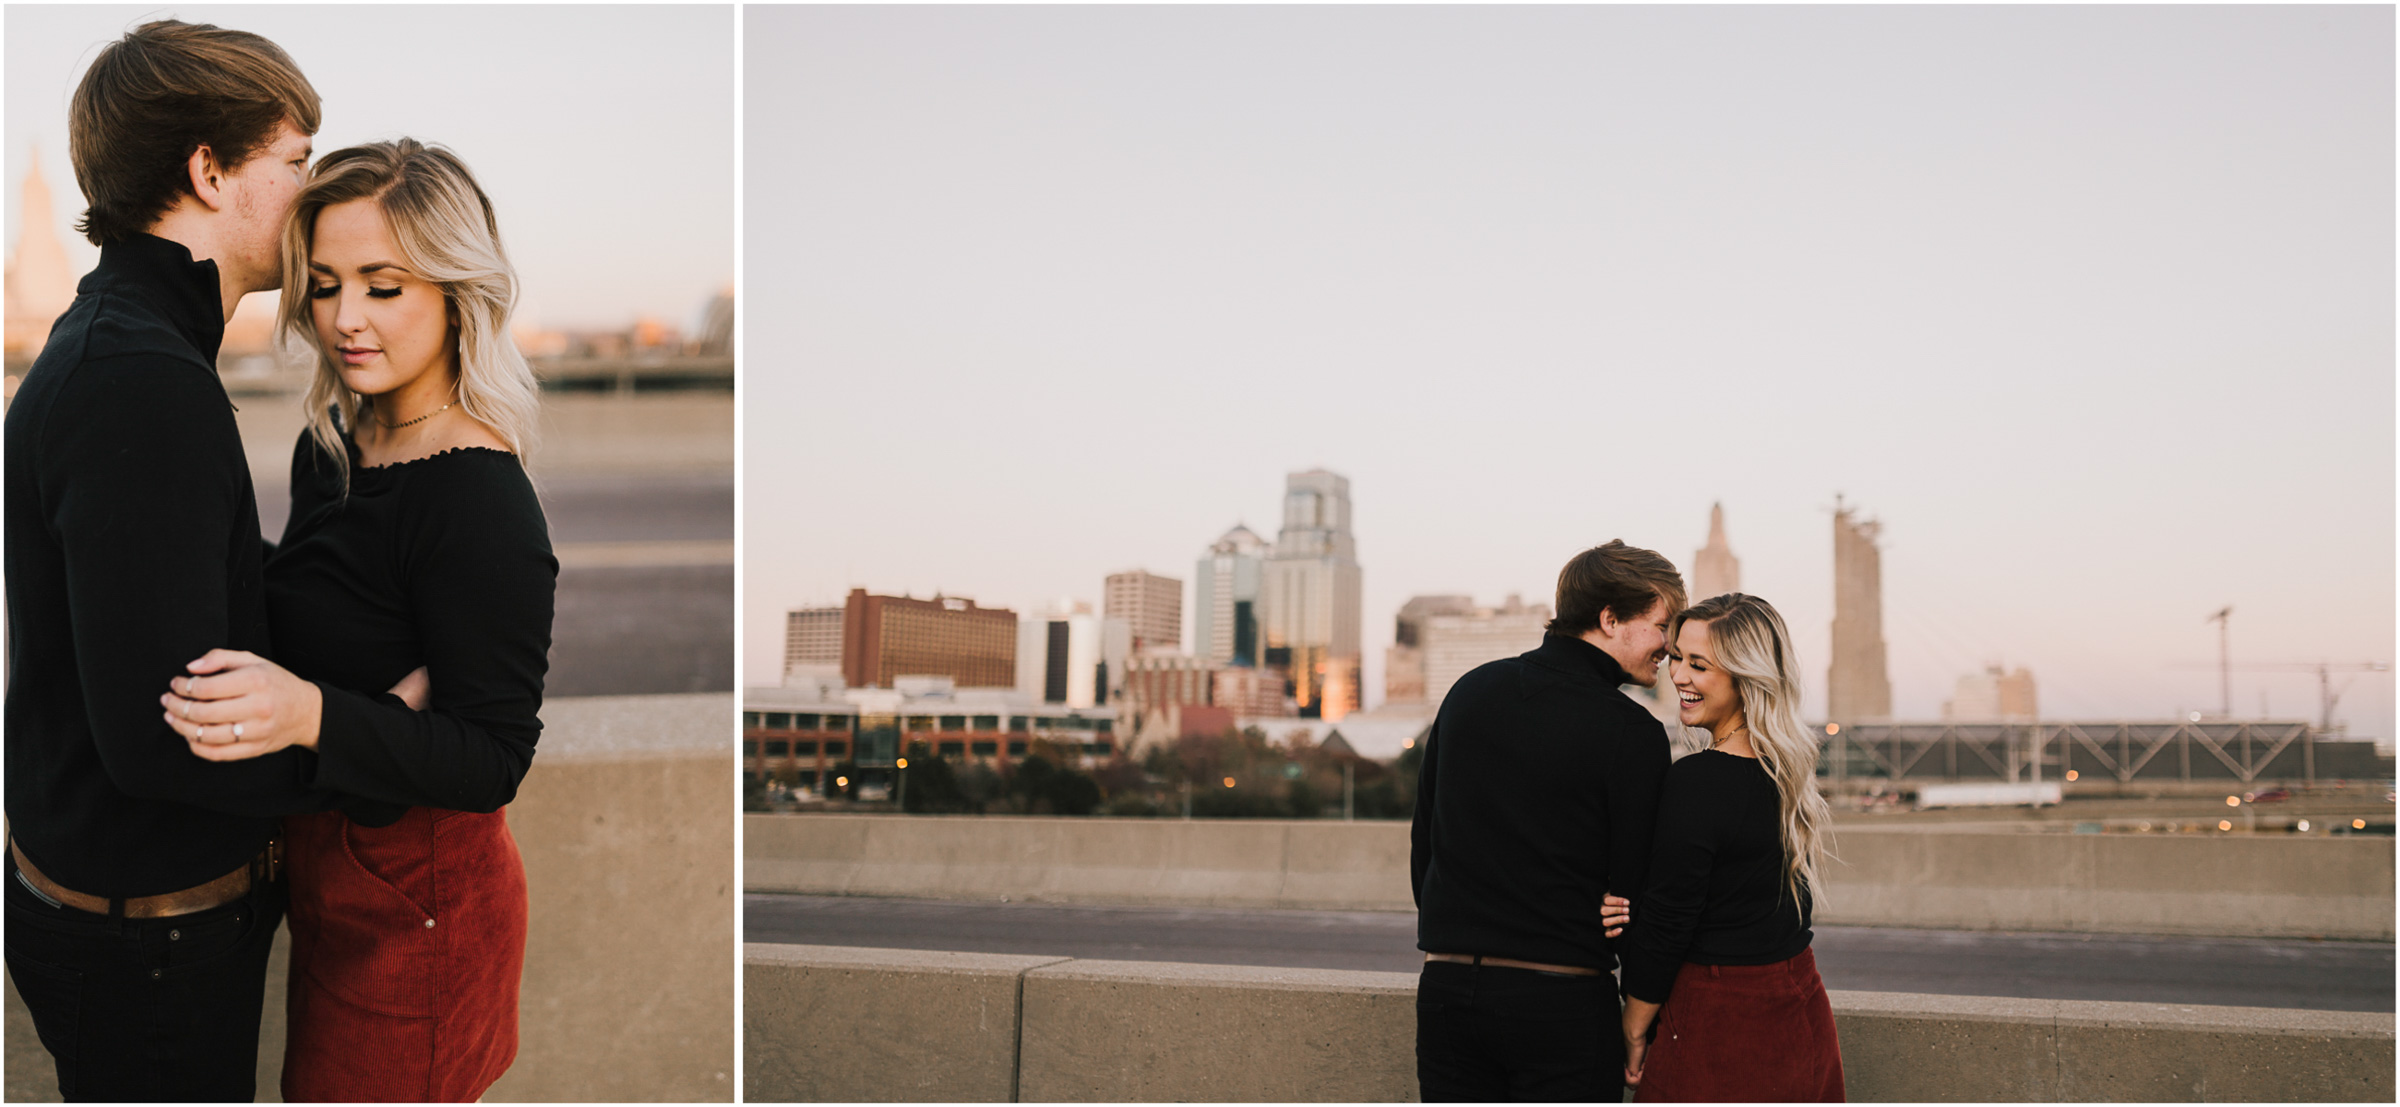 alyssa barletter photography downtown kansas city missouri engagement photos fall winter kcmo-21.jpg